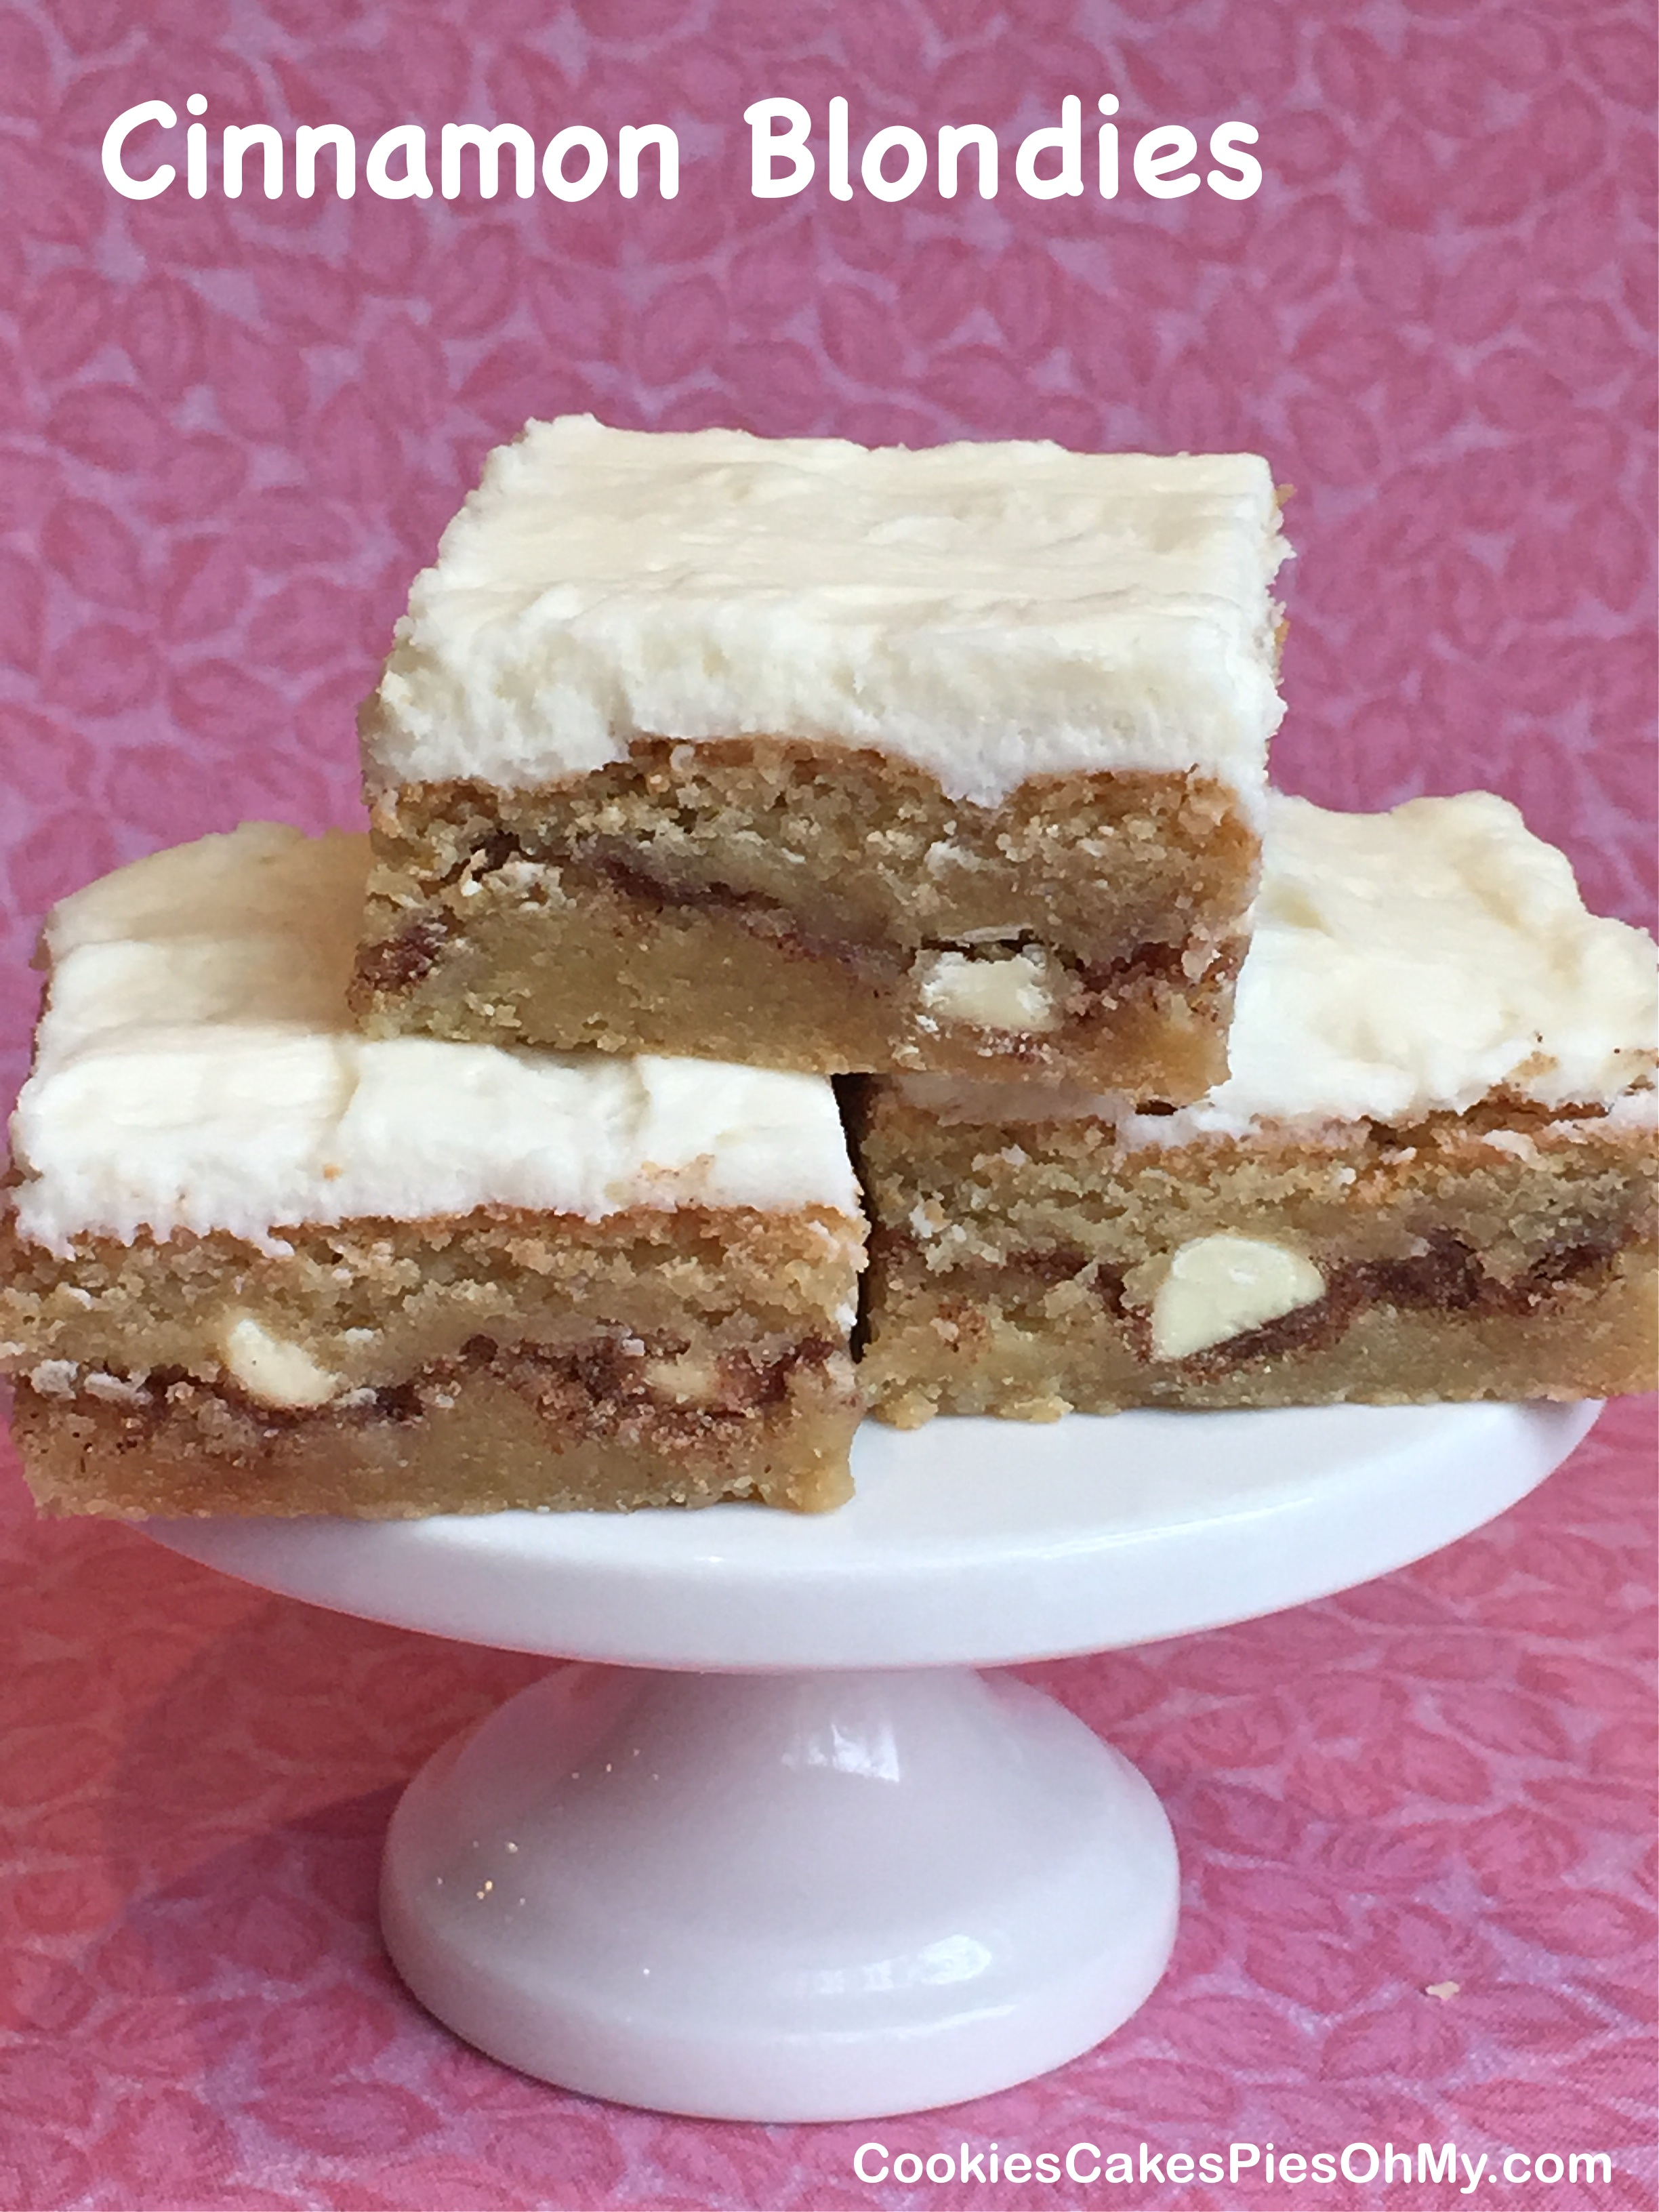 ... cinnamon roll blondies these delicious cinnamon swirled blondies have